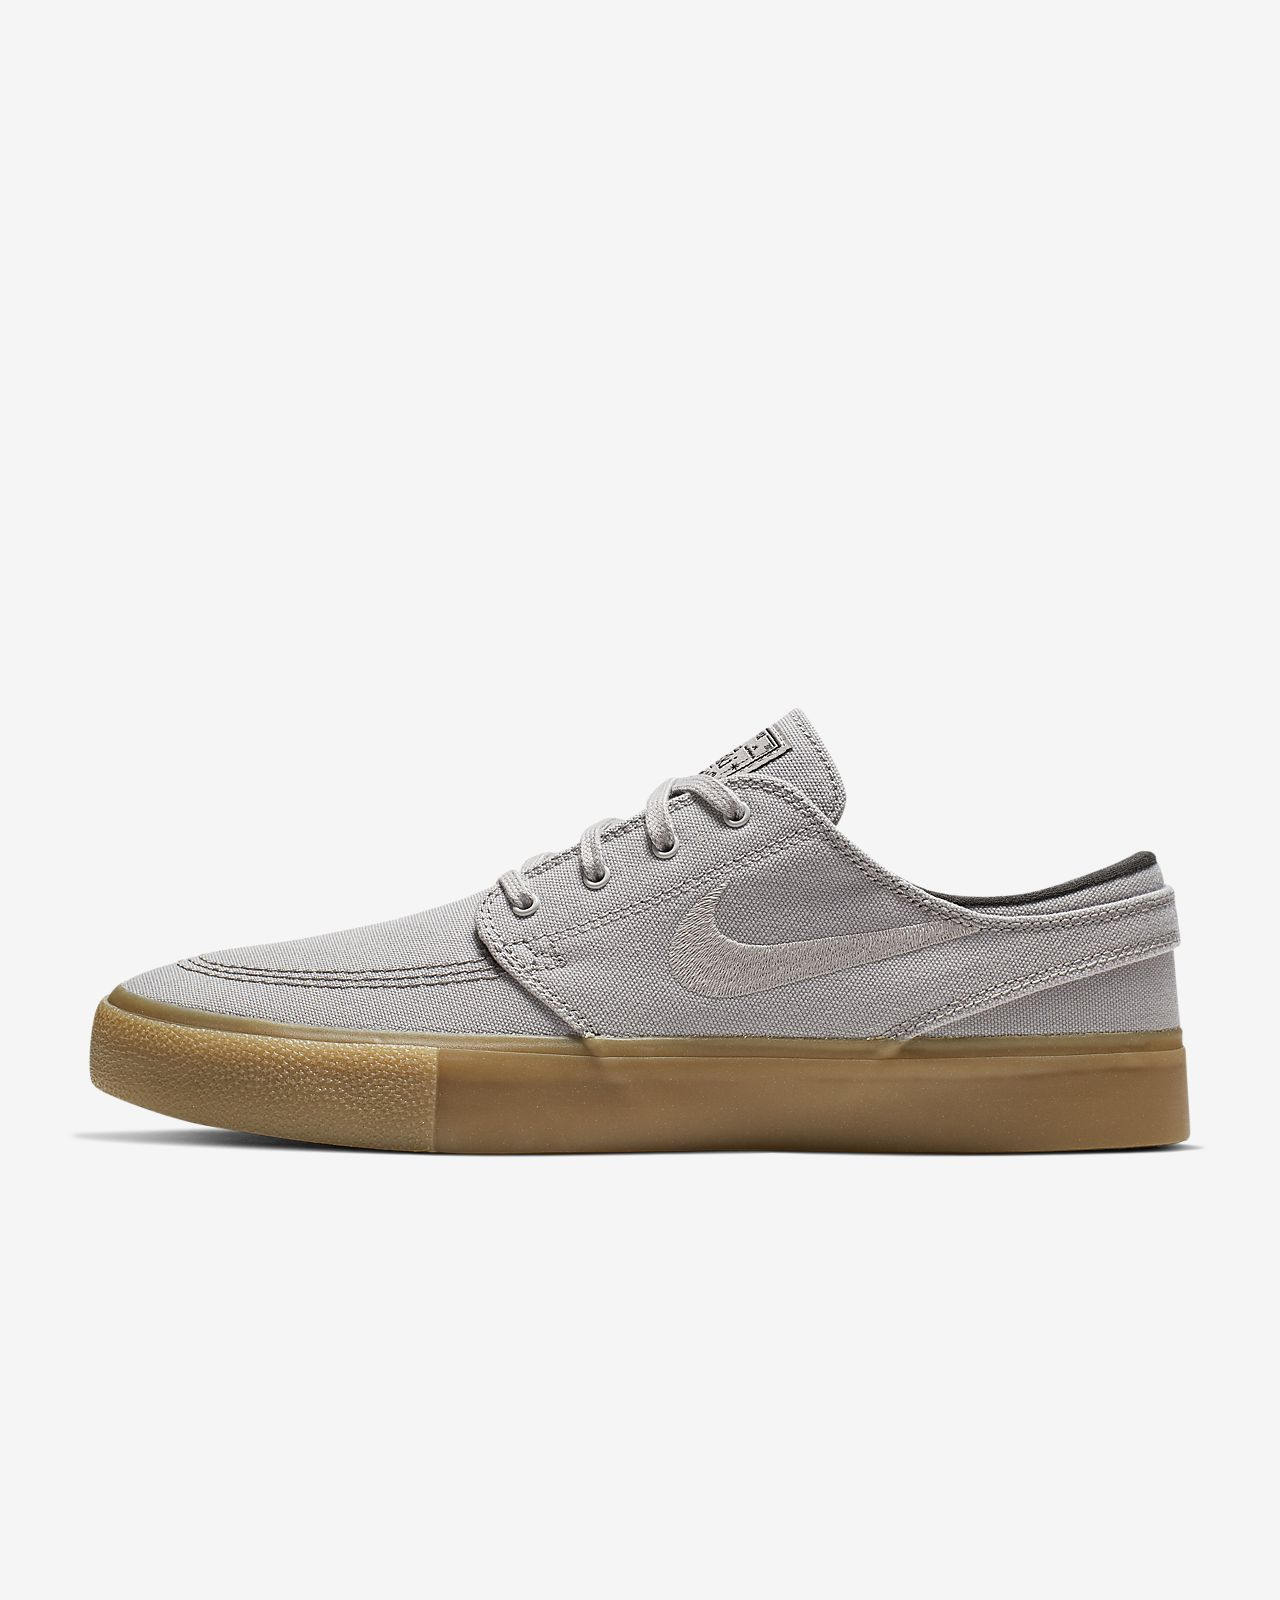 on feet images of exclusive deals sneakers Nike SB Zoom Stefan Janoski Canvas RM Skate Shoe